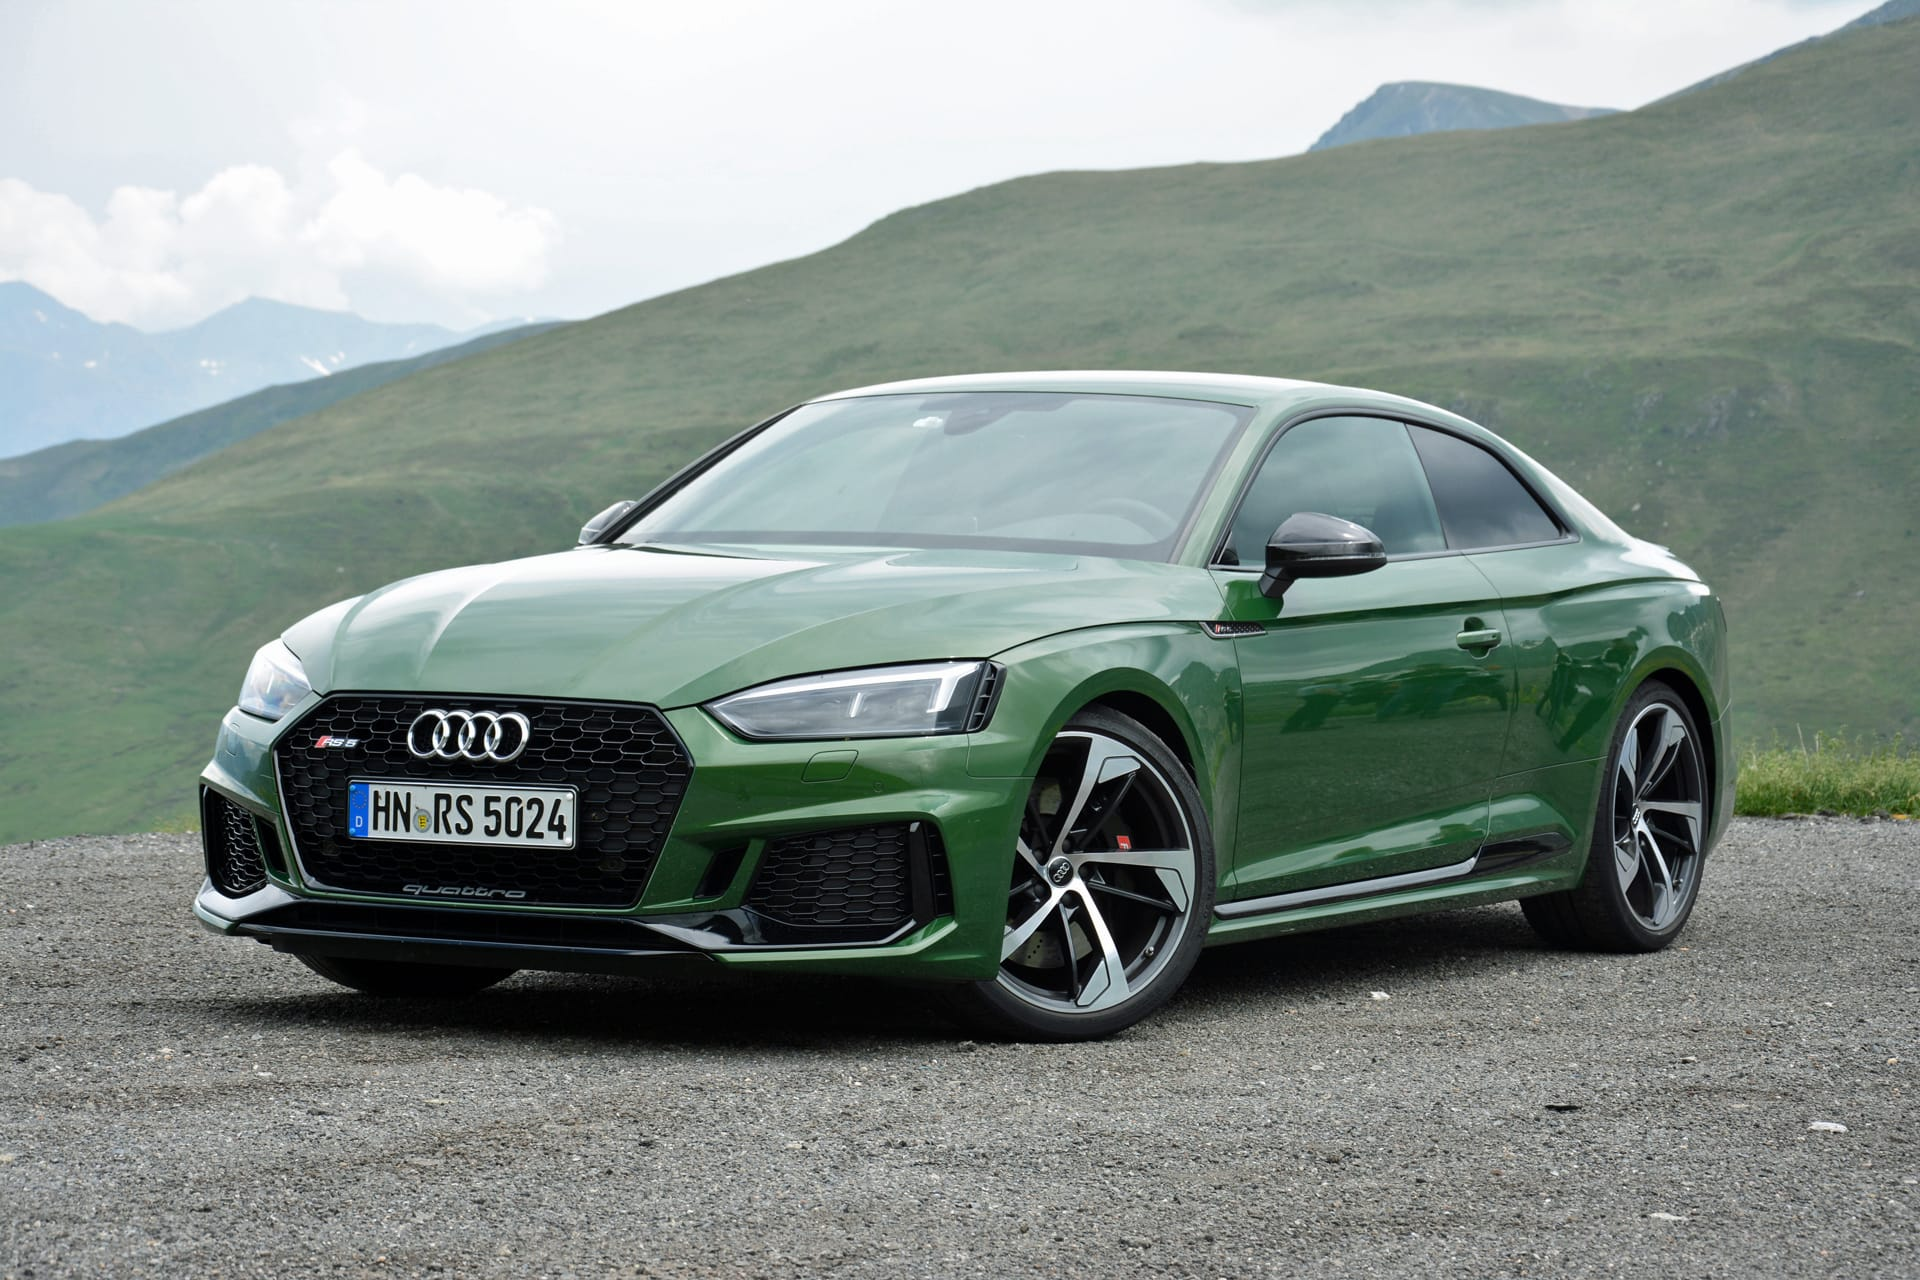 2018 Audi Rs 5 First Drive Review Green With Mean